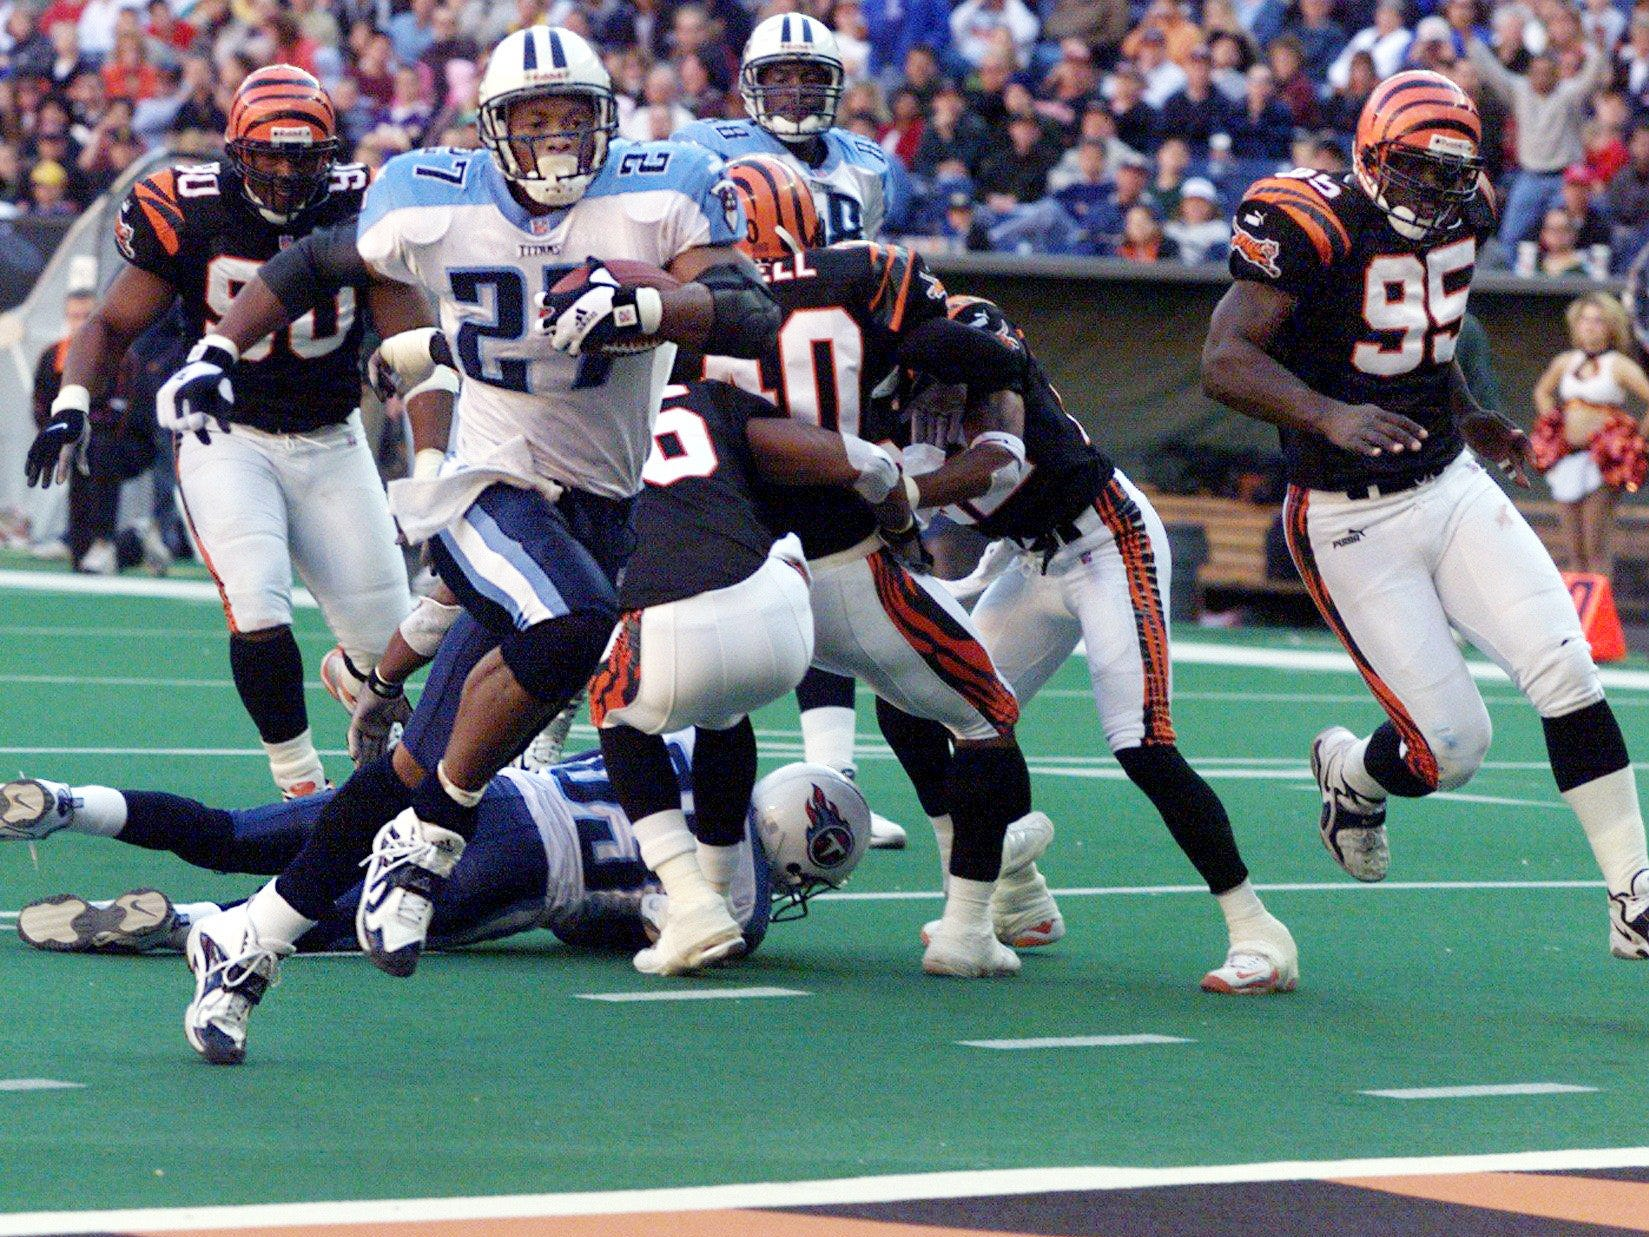 Tennessee Titans running back Eddie George rushes into the end zone for a touchdown in their 24-14 victory over the Cincinnati Bengals at the Adelpha Coliseum in Nashville Nov. 14, 1999.